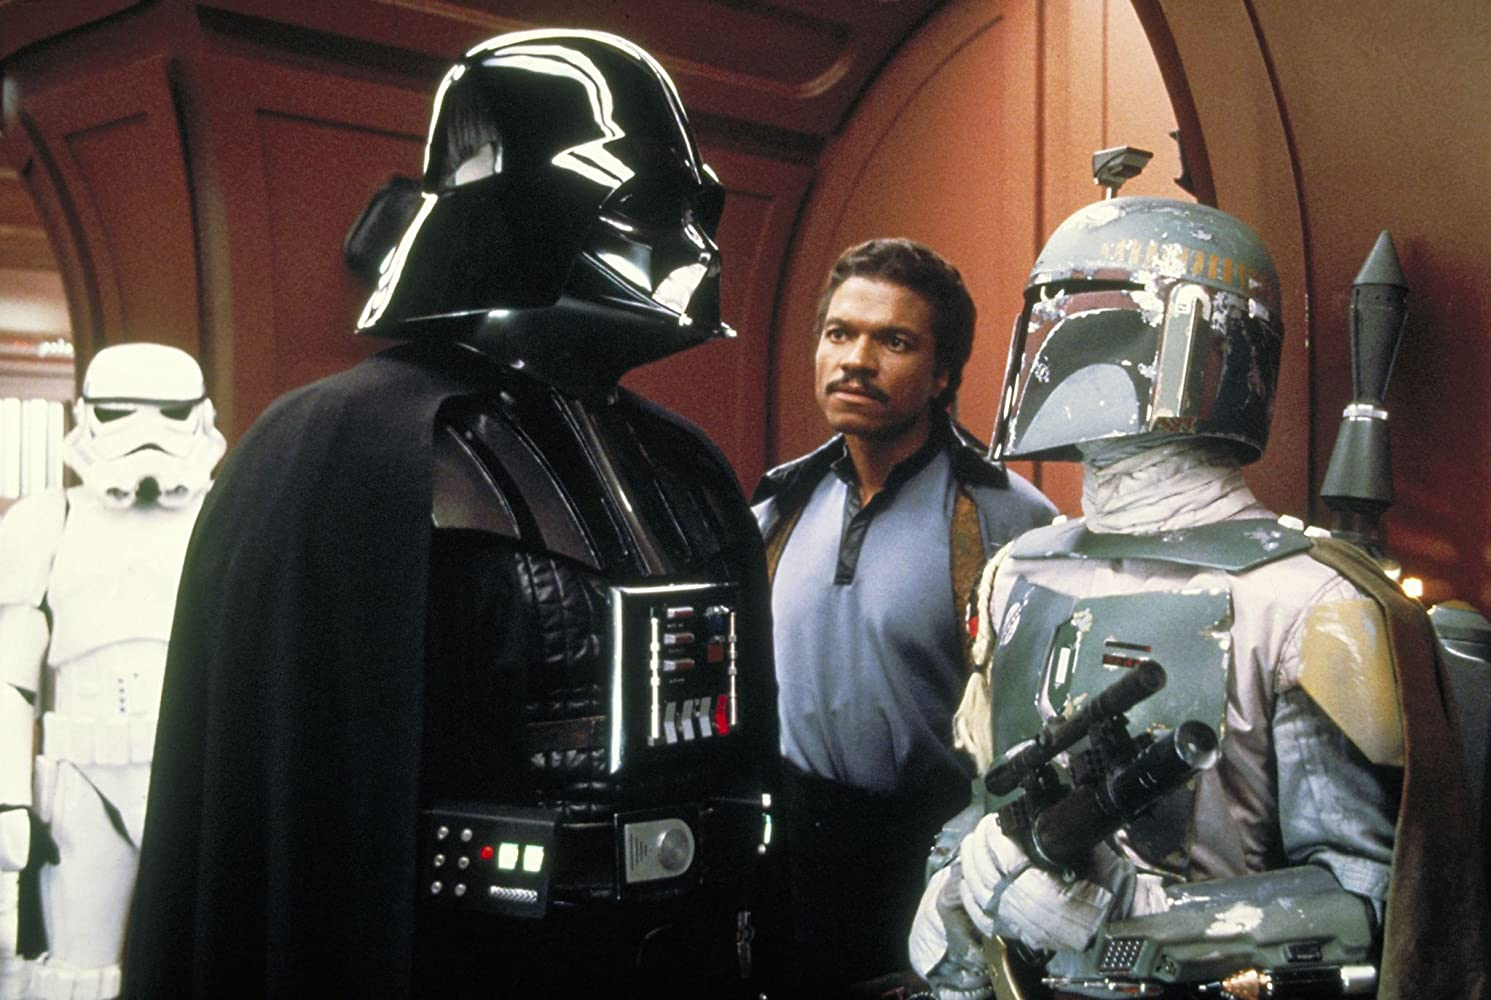 David Prowse, Billy Dee Williams, and John Morton in Star Wars: Episode V - The Empire Strikes Back (1980)